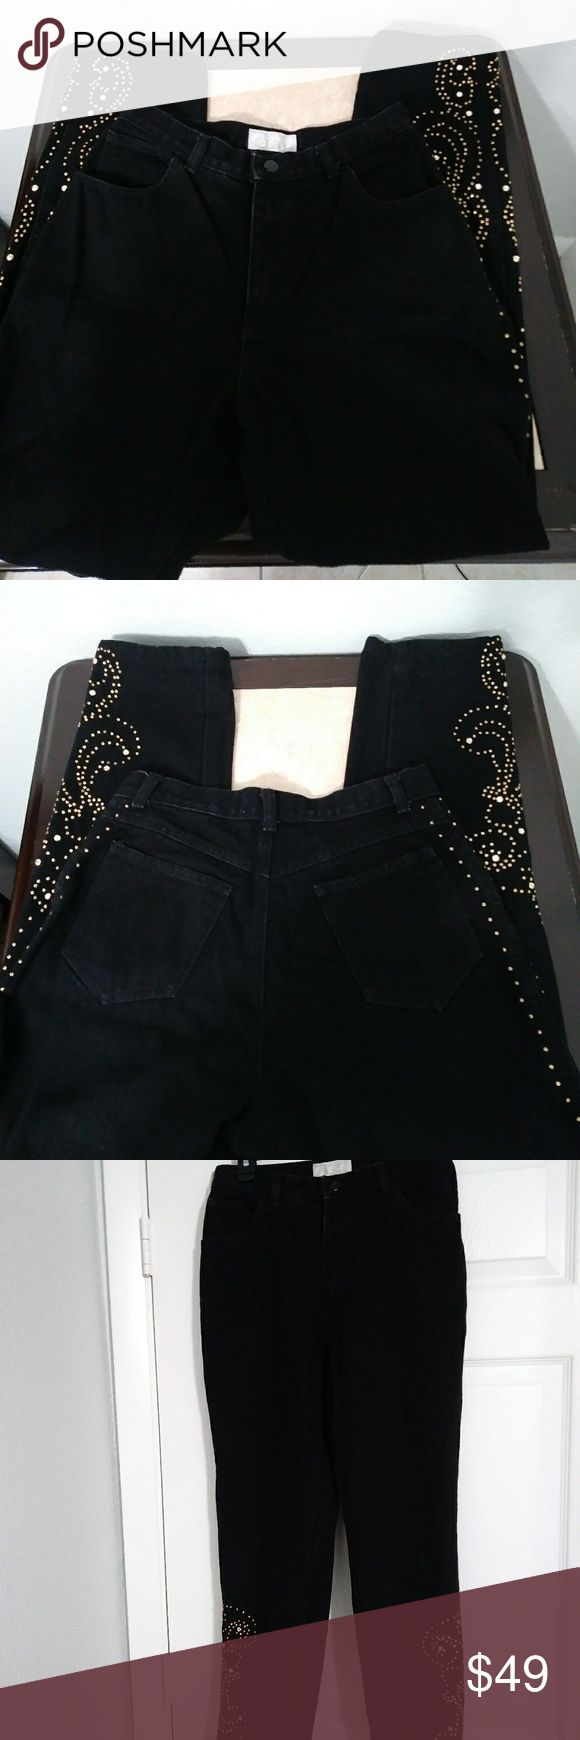 "Cache Embellished Jeans EUC. Black jeans heavily embellished with goldtone studs and sparkly rivets. All studs and rivets intact. Edgy, rocker style. Straight Leg. Flat-Lay Measurements: Waist - 14"", Rise - 10"", Inseam - 29"". Cache Jeans Straight Leg"